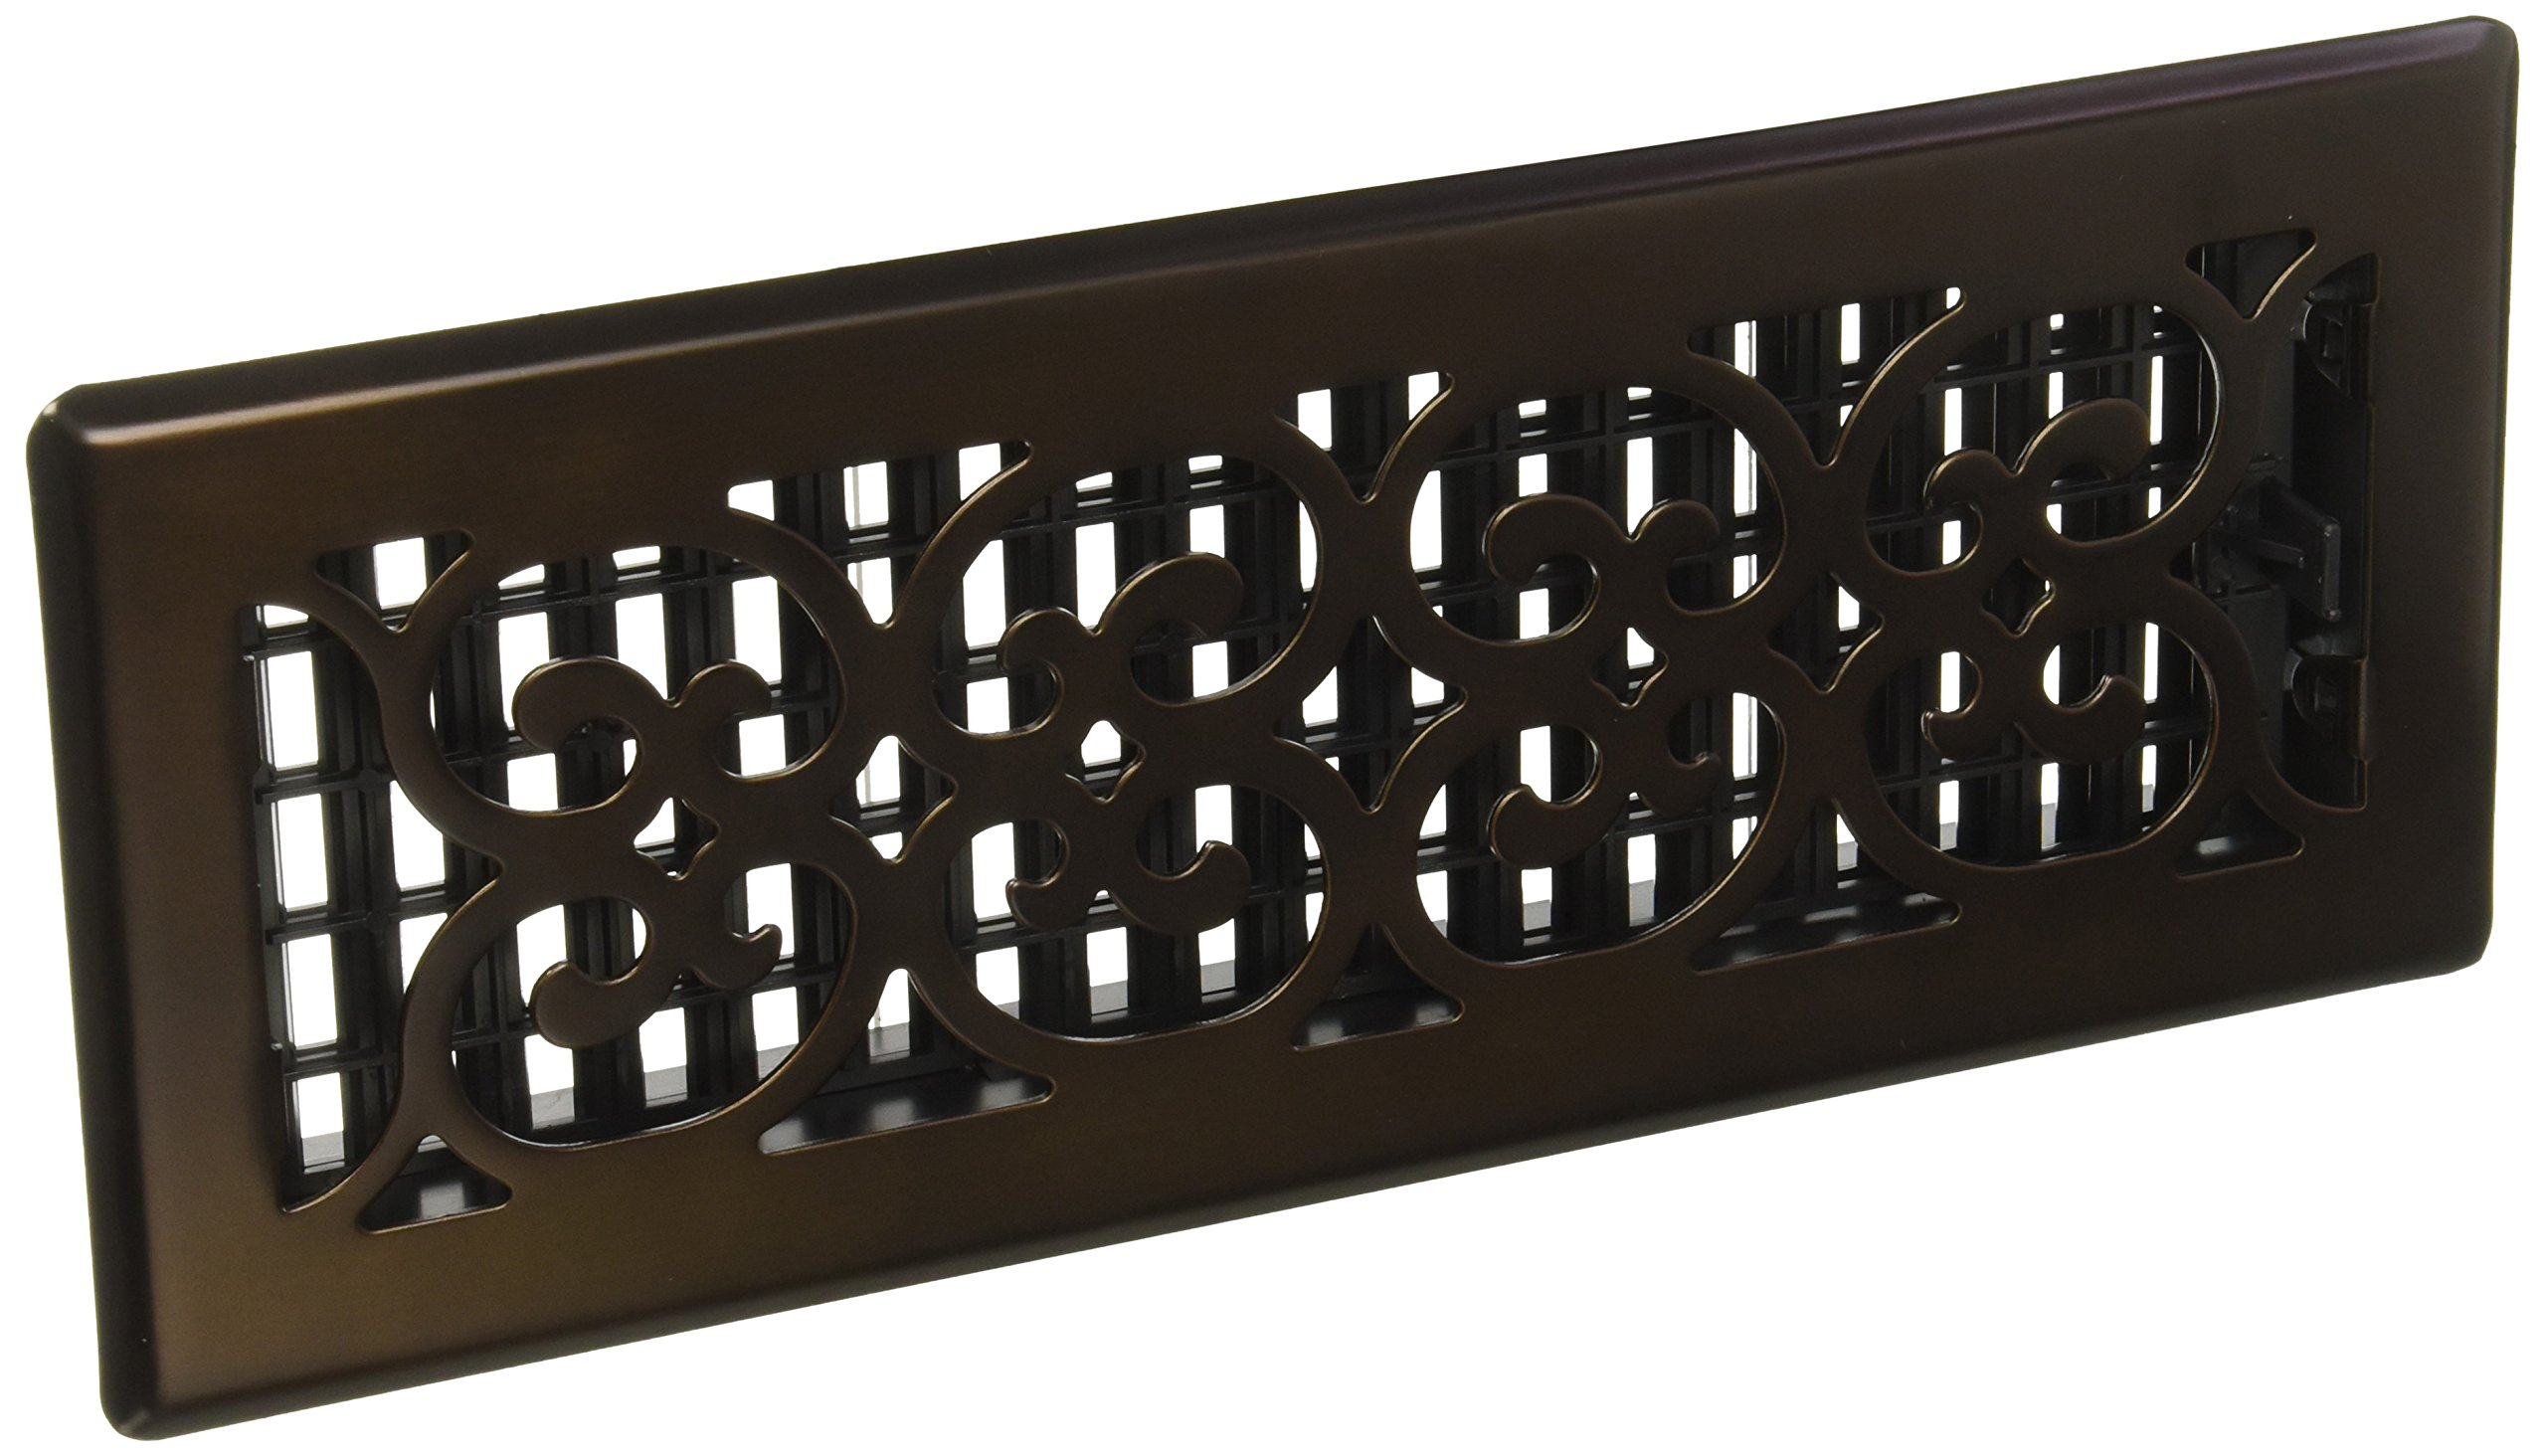 Decor Grates SPH412-RB Scroll Plated Register, 4-Inch by 12-Inch, Rubbed Bronze by Decor Grates